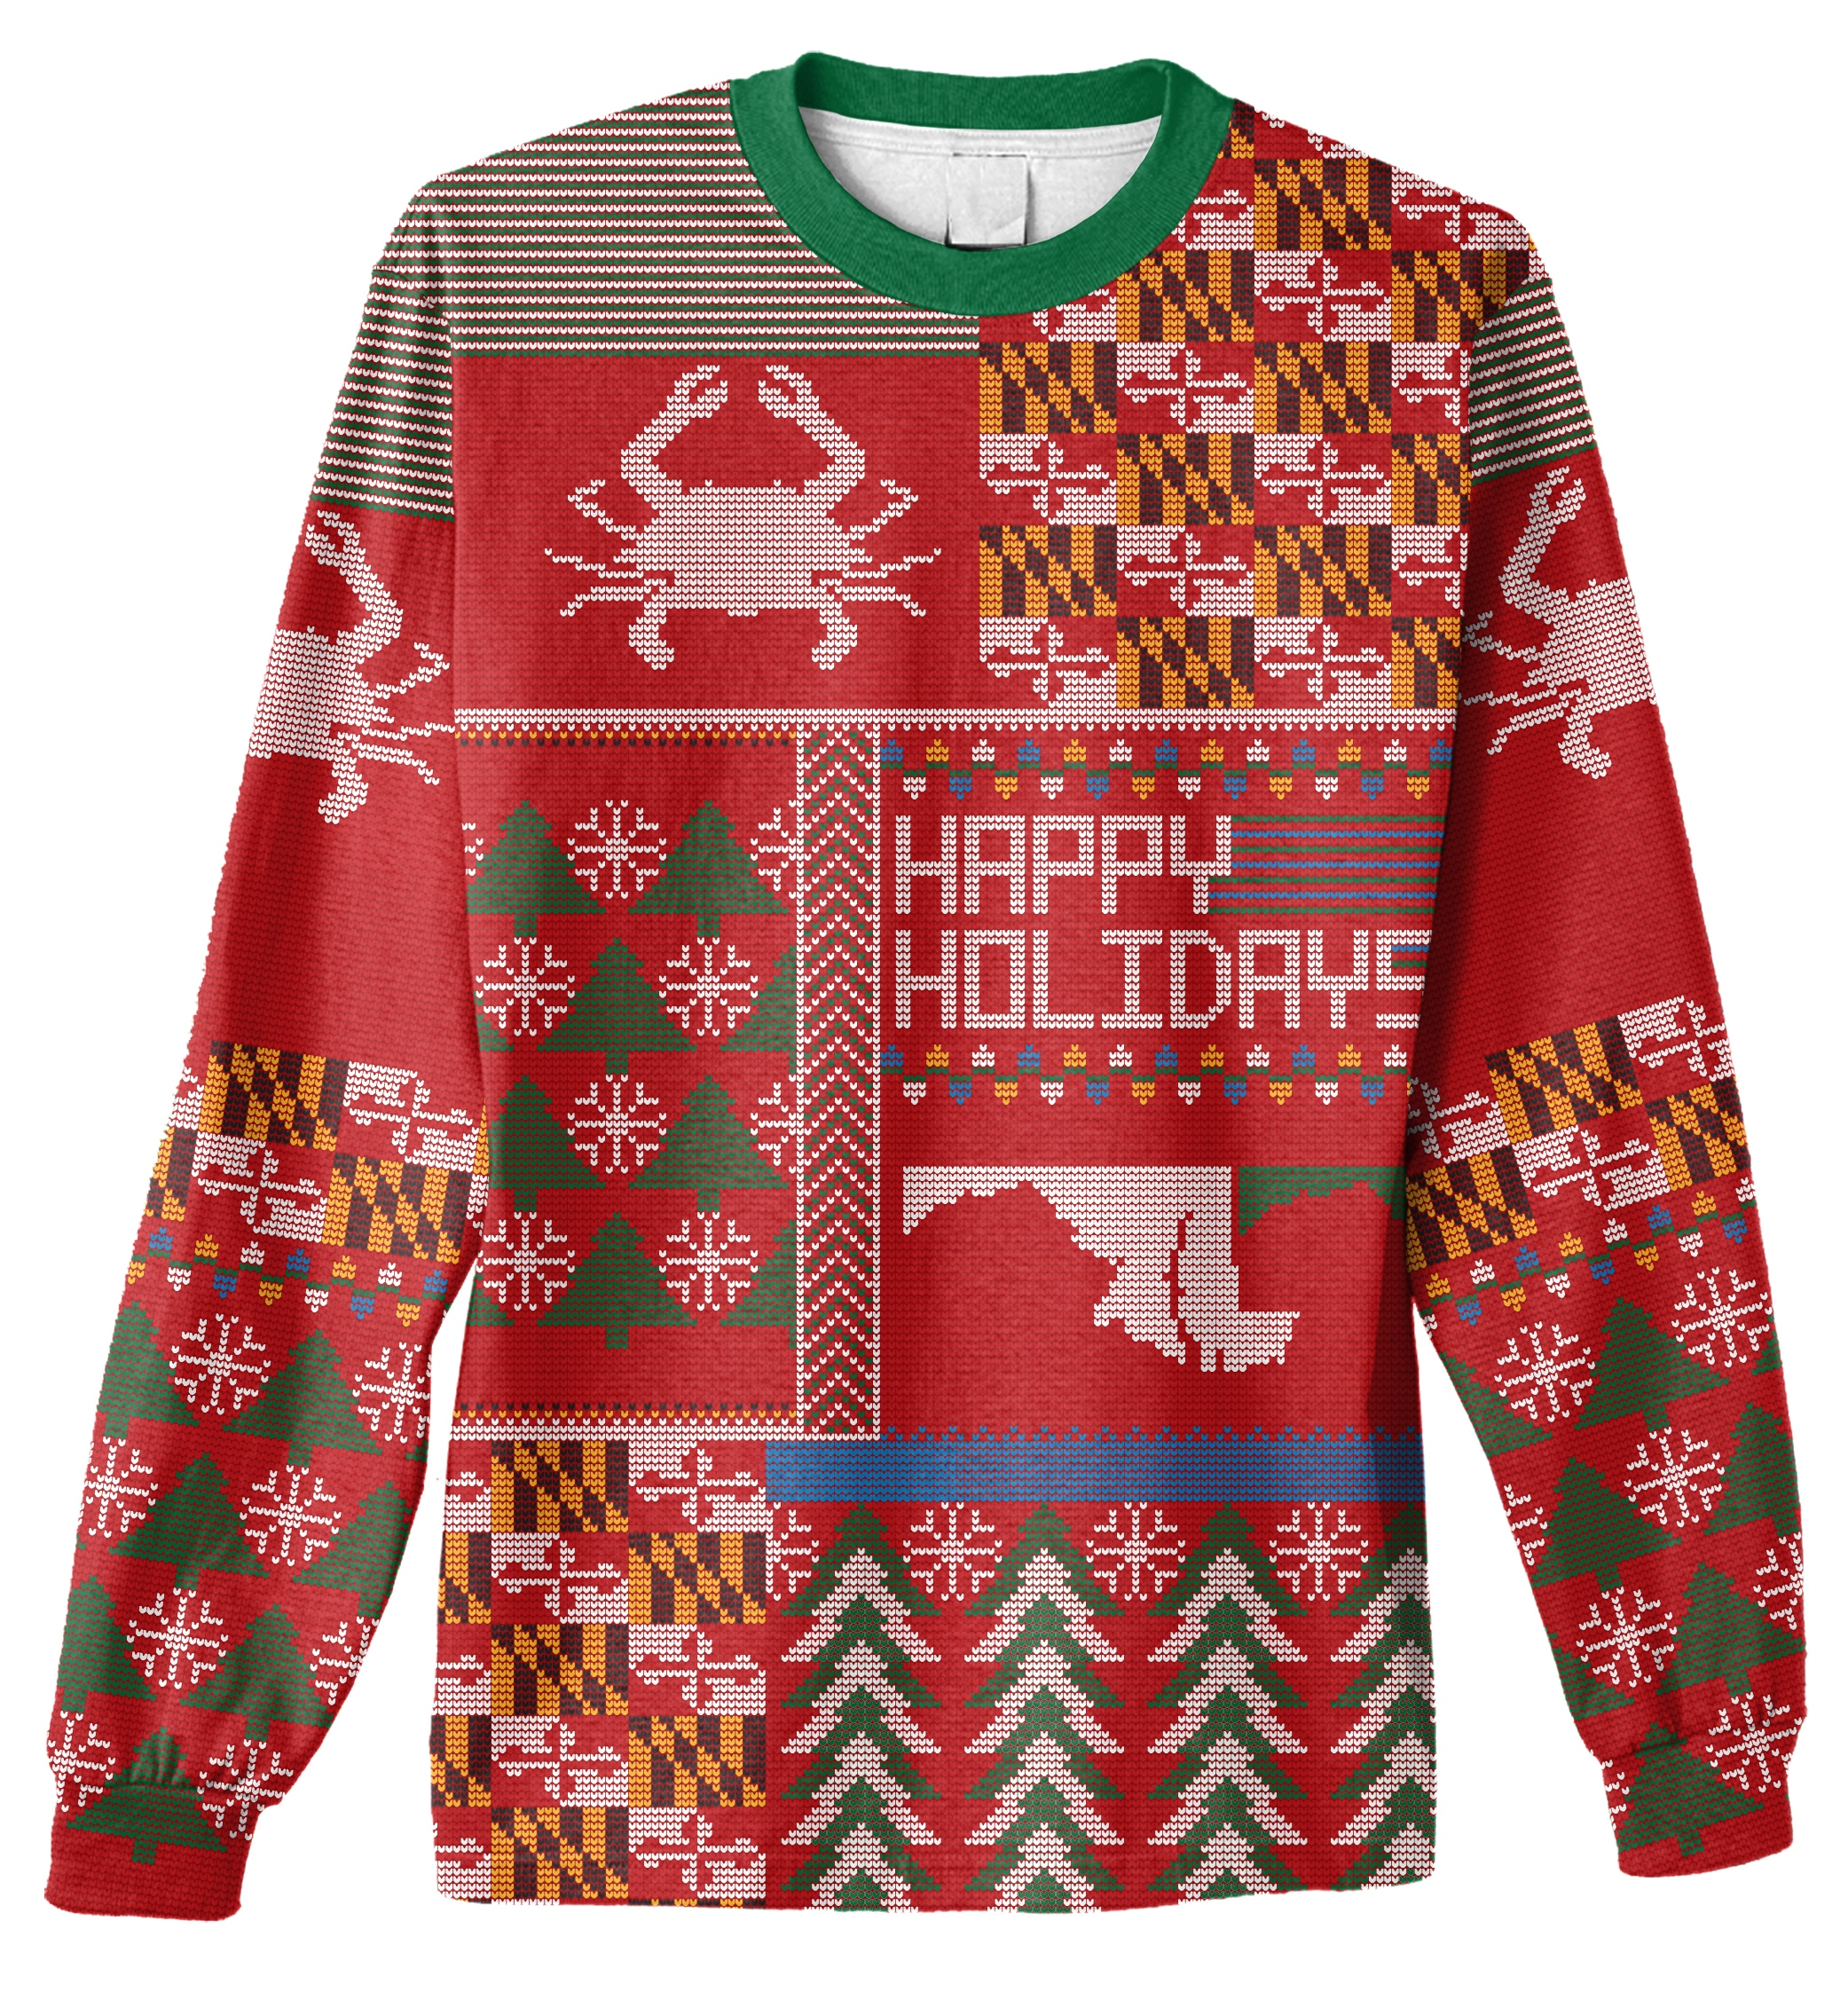 wrapping paper ugly christmas sweater md spirit - Pink Ugly Christmas Sweater